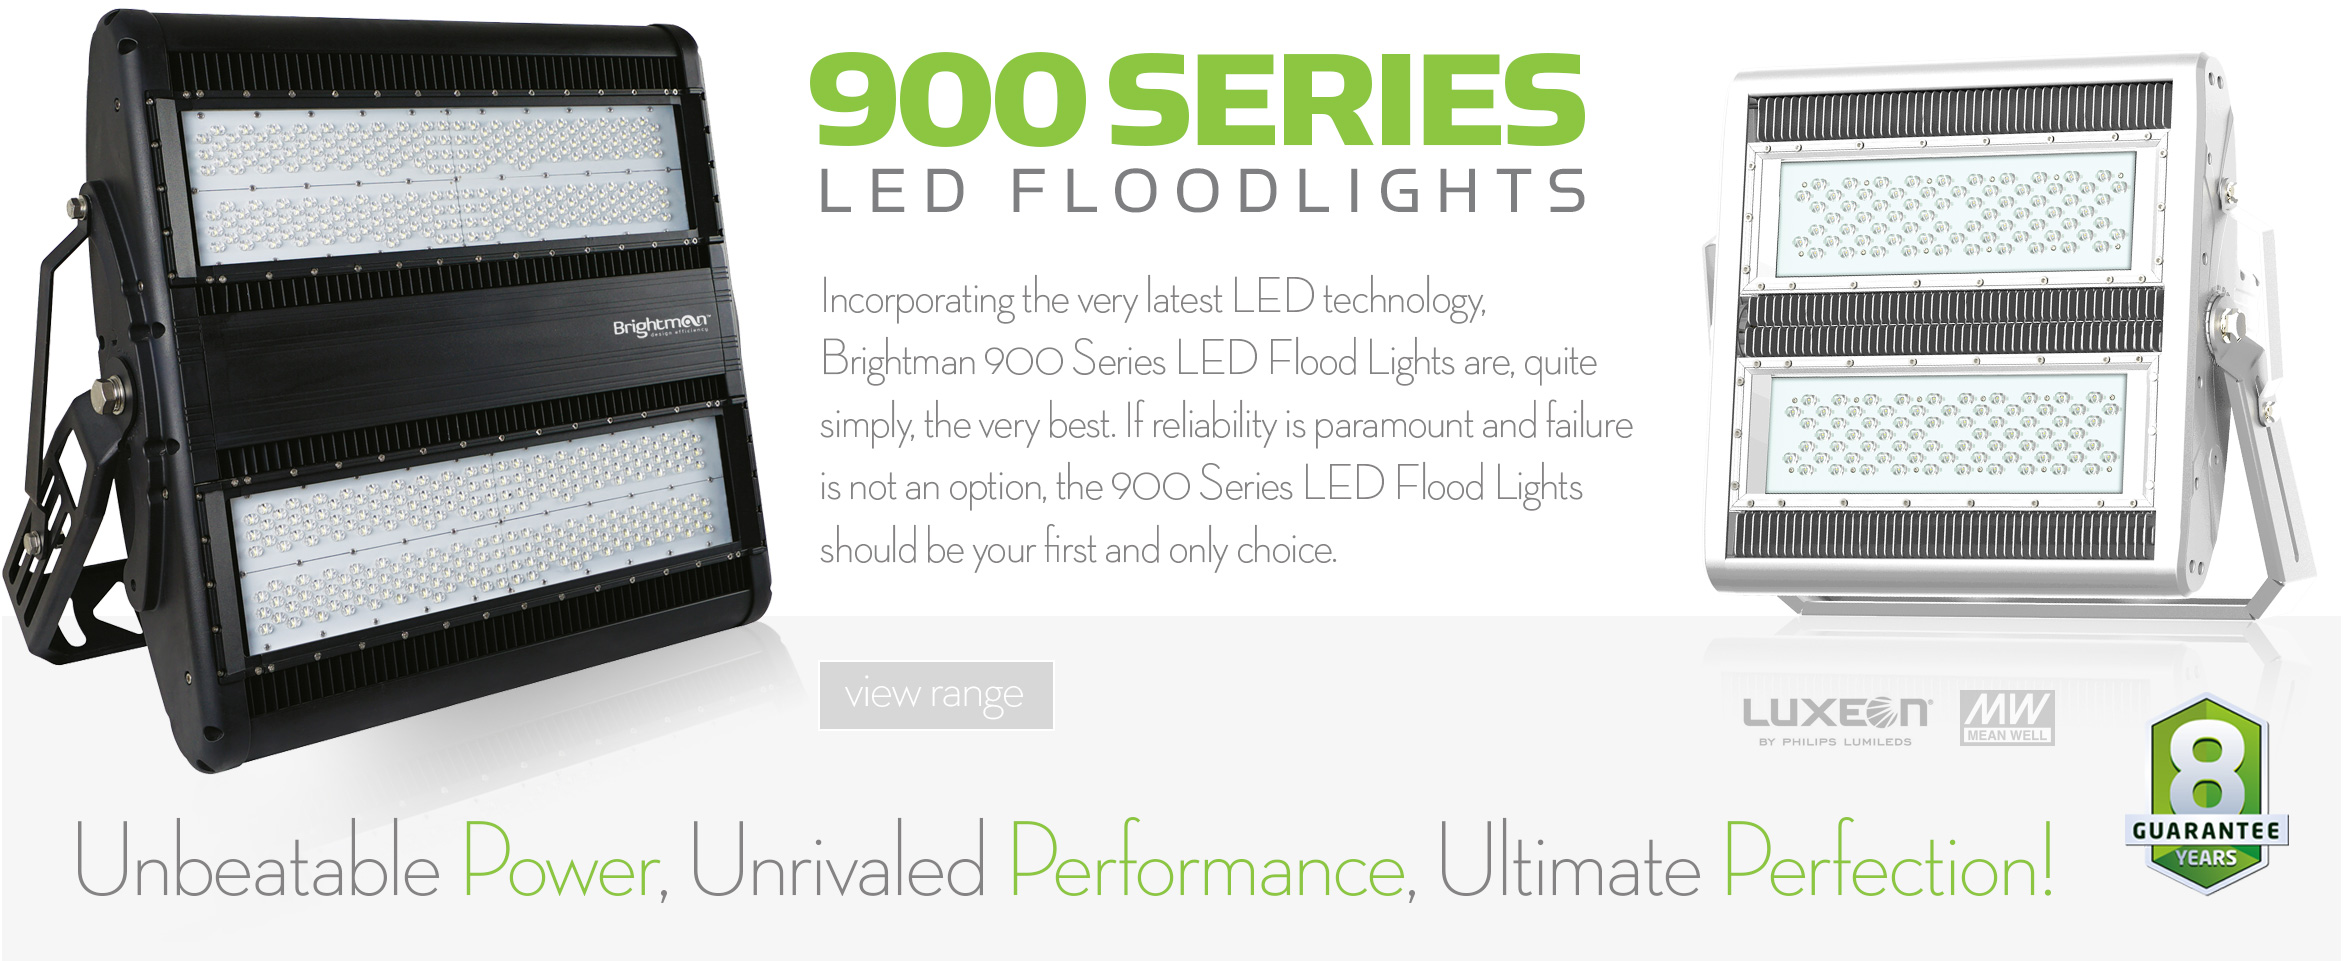 900 Series LED Floodlights